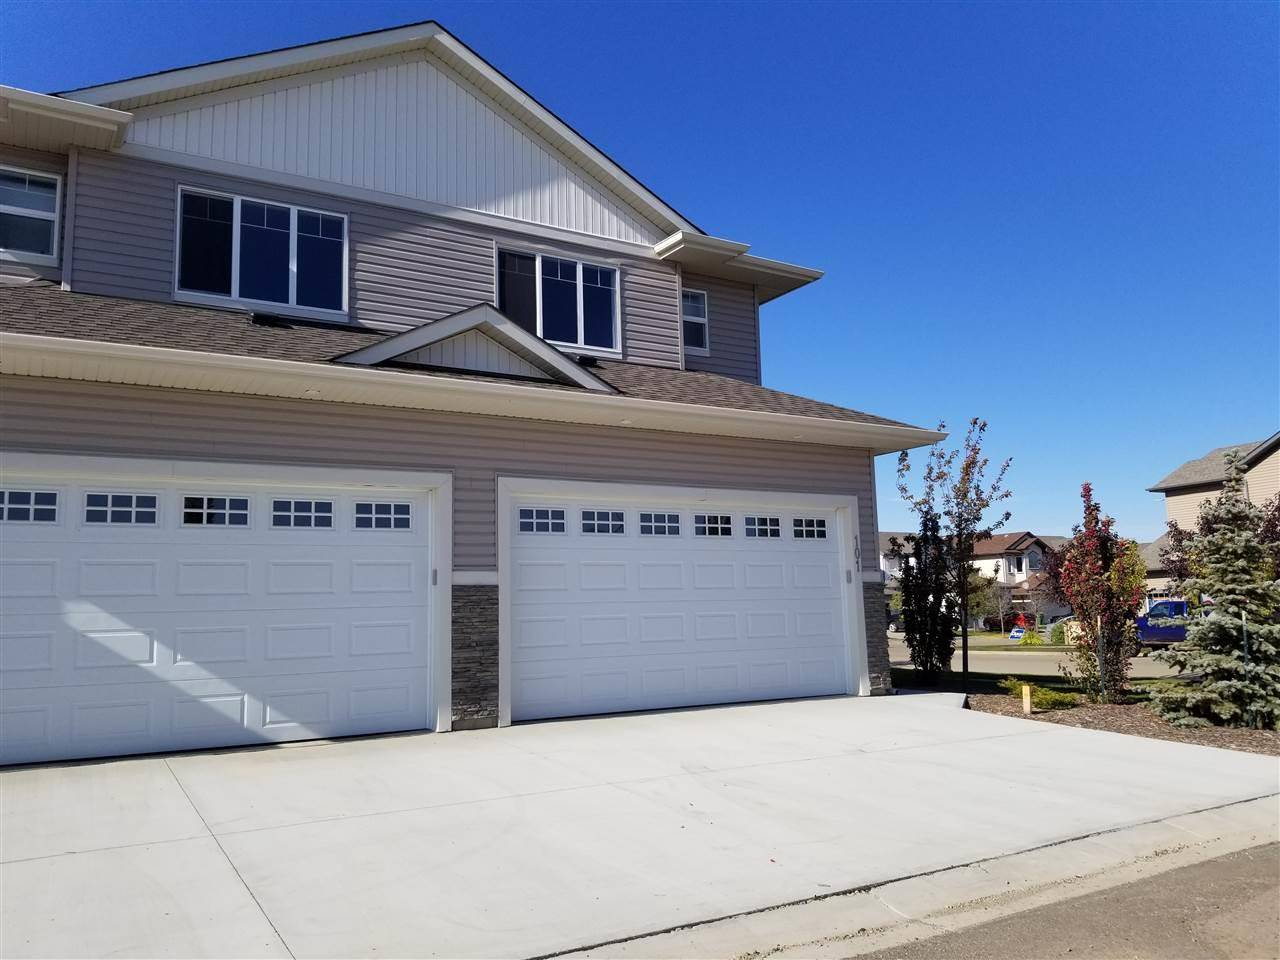 Townhouse for sale at 300 Awentia Dr Unit 101 Leduc Alberta - MLS: E4142877